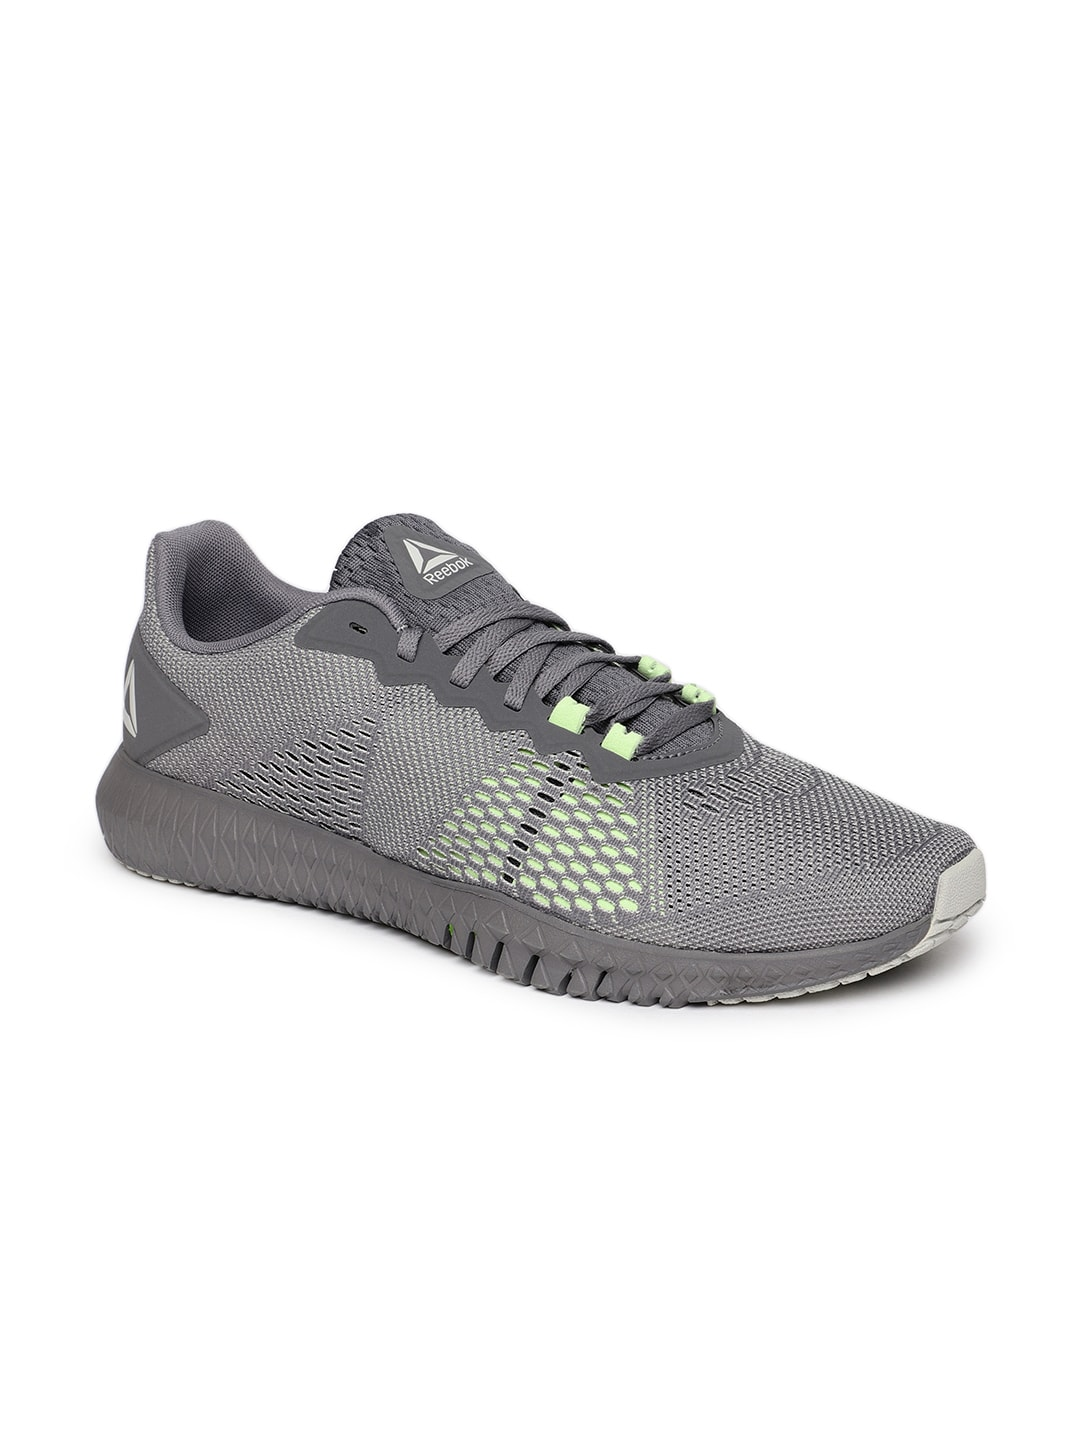 1cdf34f9432c15 Reebok Training Shoes - Buy Reebok Training Shoes online in India